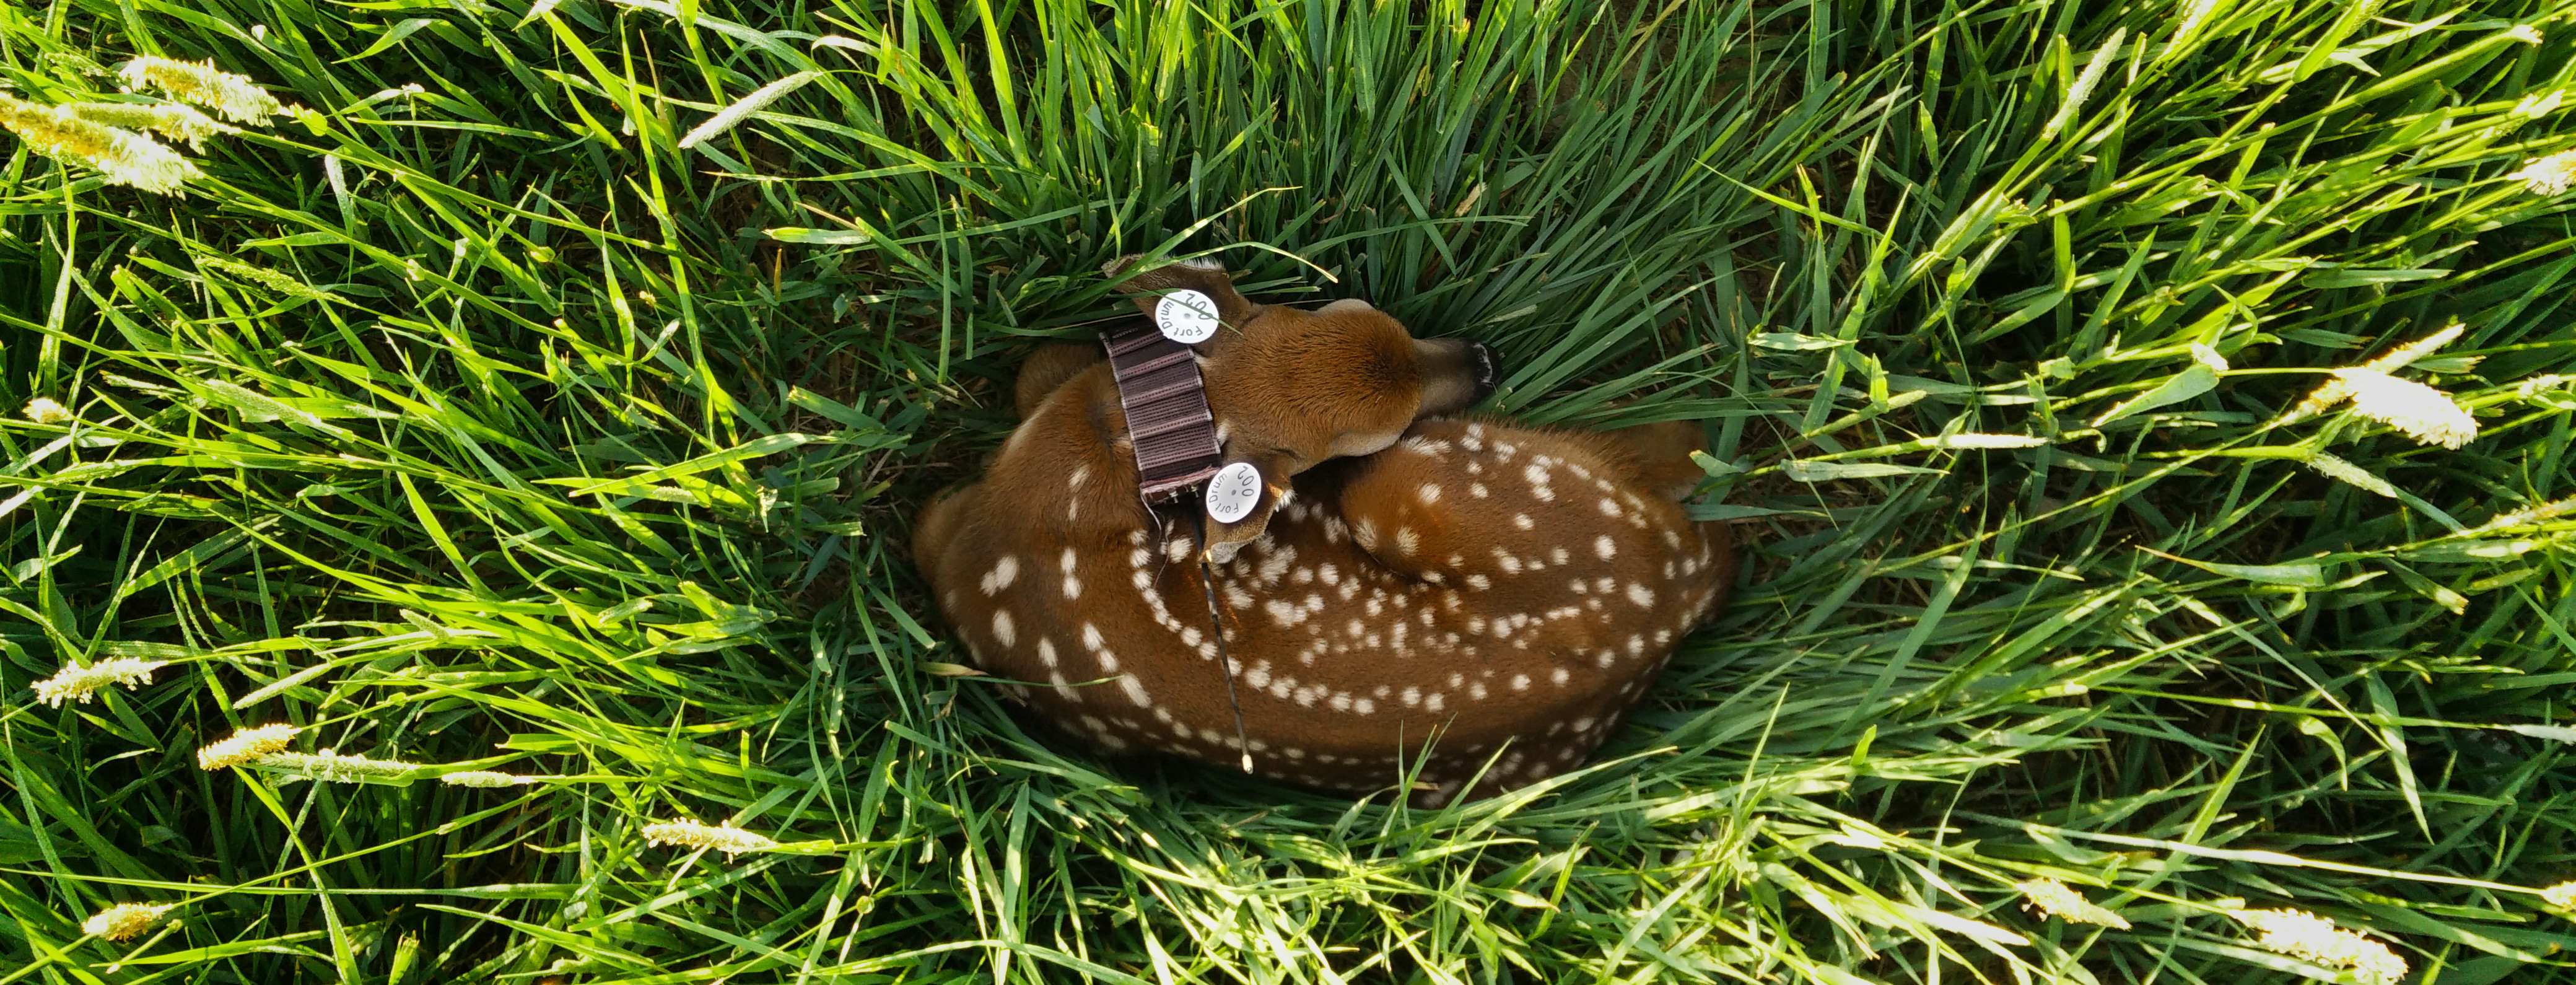 Fawn 002 from Summer 2015